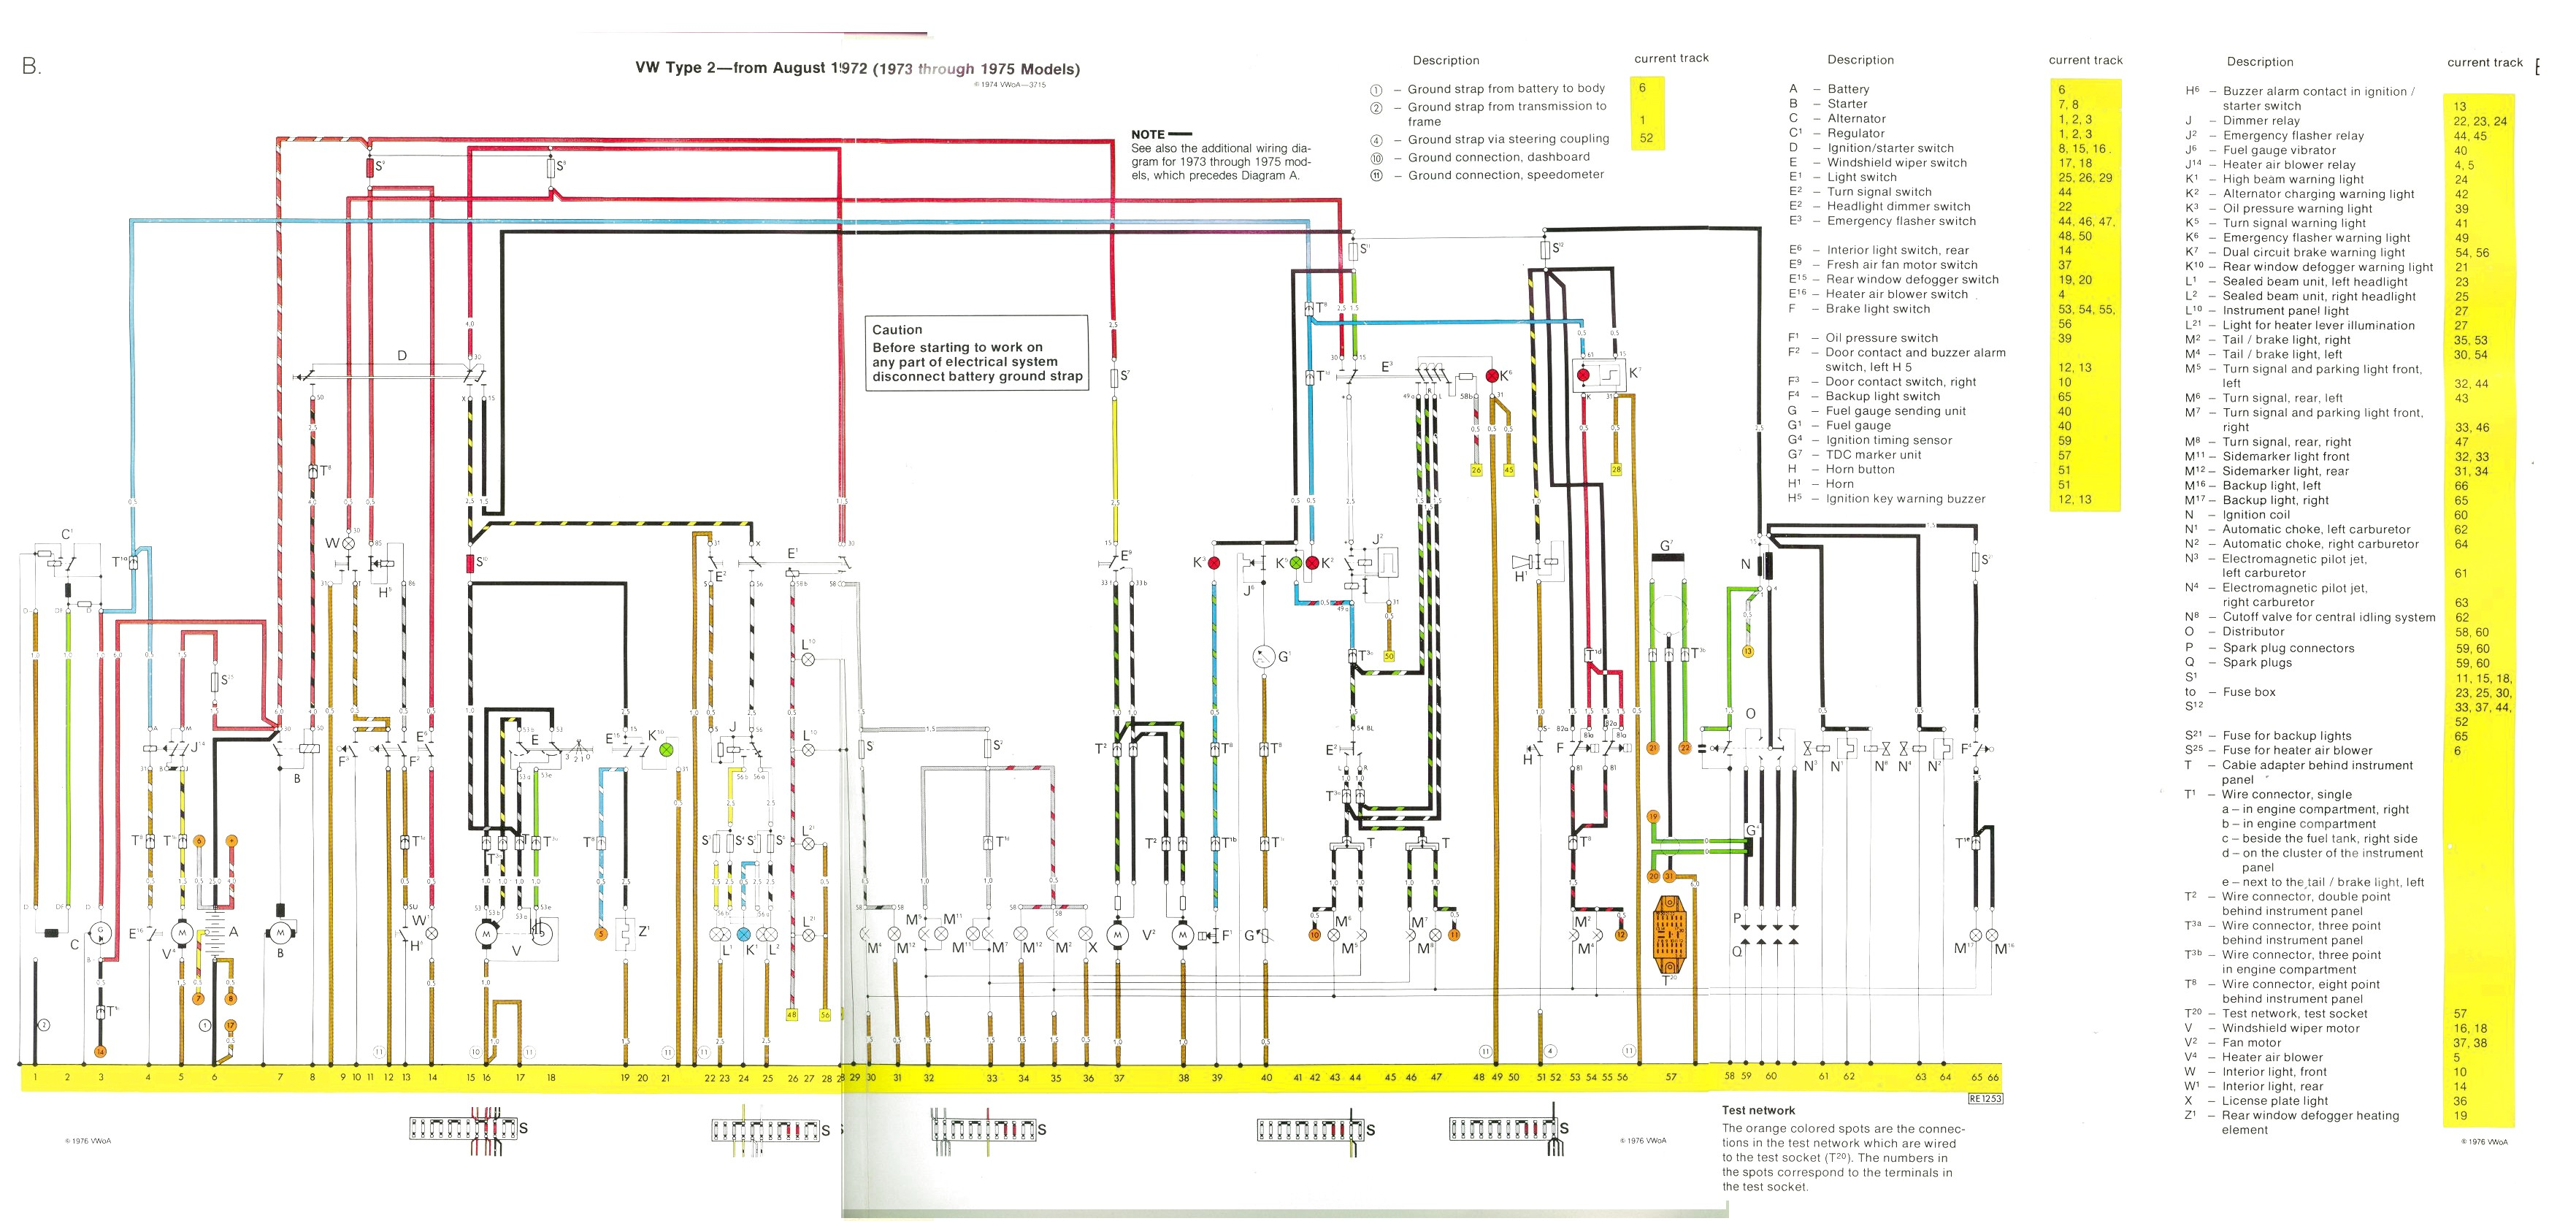 1973 Vw Bus Wiring Diagram Just Another Blog Beetle Engine On Super Vintagebus Com And Other Diagrams Rh 1970 Bug